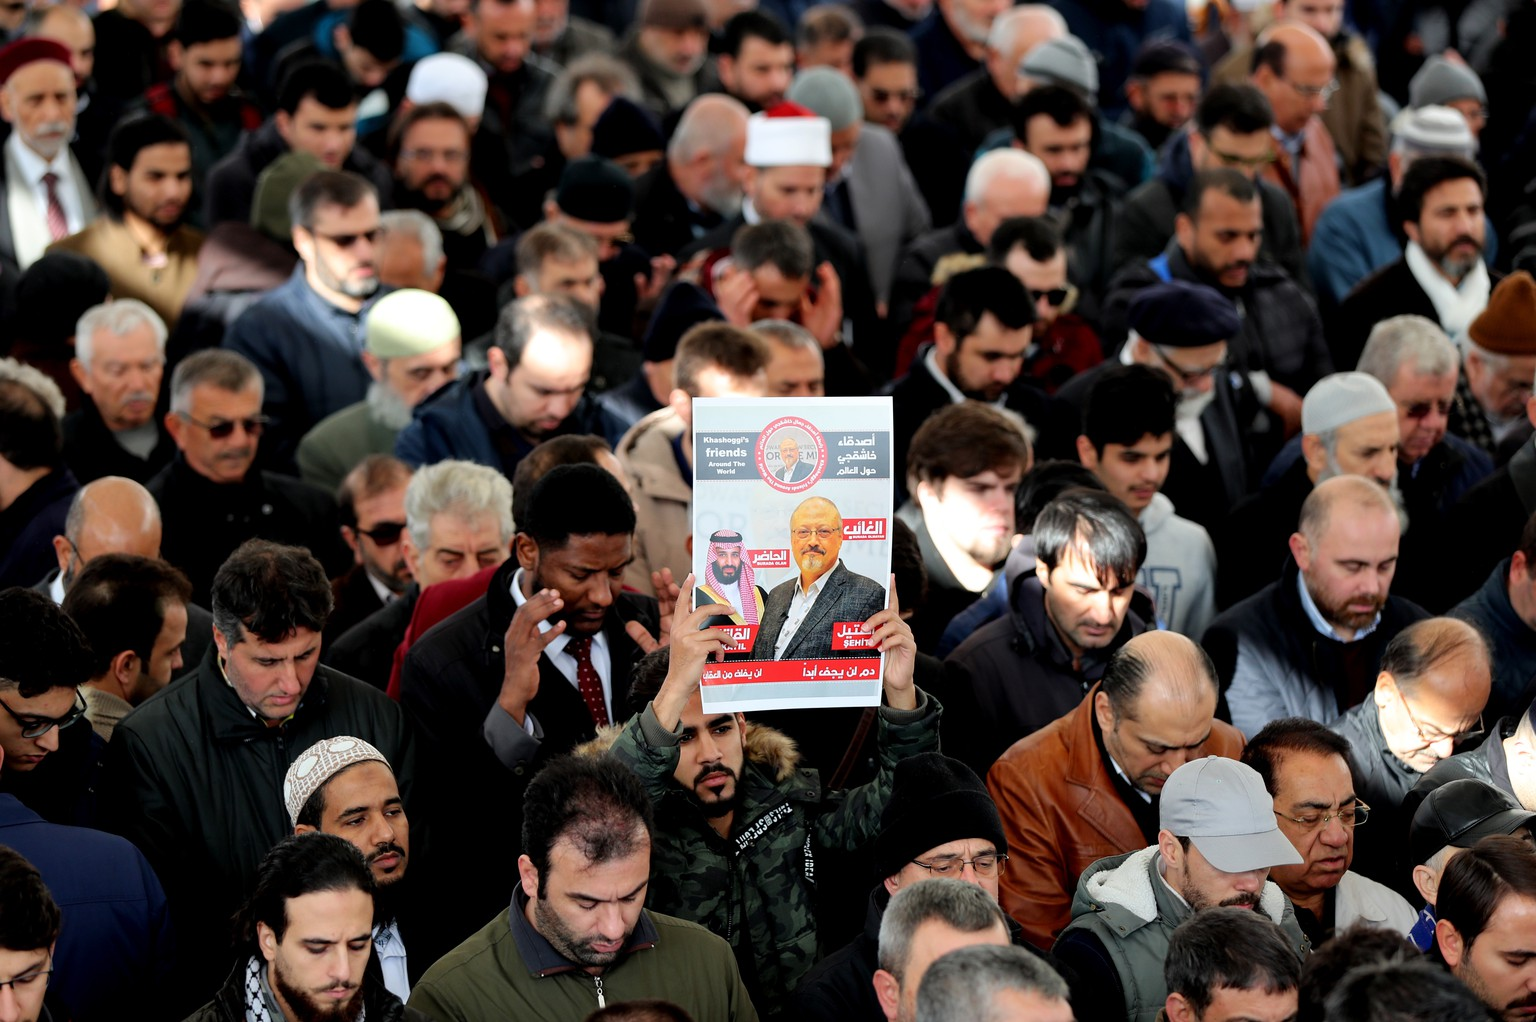 epa07169793 People hold photo of slain Saudi journalist Jamal Khashoggi as they perform a prayer at Fatih Mosque in Istanbul, Turkey, 16 November 2018. According to reports, Saudi Arabia's Attorney General Saud al-Mujeb on 15 November told a press conference that an order to bring back Saudi journalist Jamal Khashoggi to Saudi Arabia, even by force, was issued on 29 September by the former Deputy President of the General Intelligence Presidency. Al-Mujeb announced he had requested the death penalty for five people who have allegedly confessed to their involvement in the killing of Khashoggi at the kingdom's consulate building in Istanbul on 02 October and confirmed that 11 people had been accused of participating in the assassination of Khashoggi.  EPA/TOLGA BOZOGLU